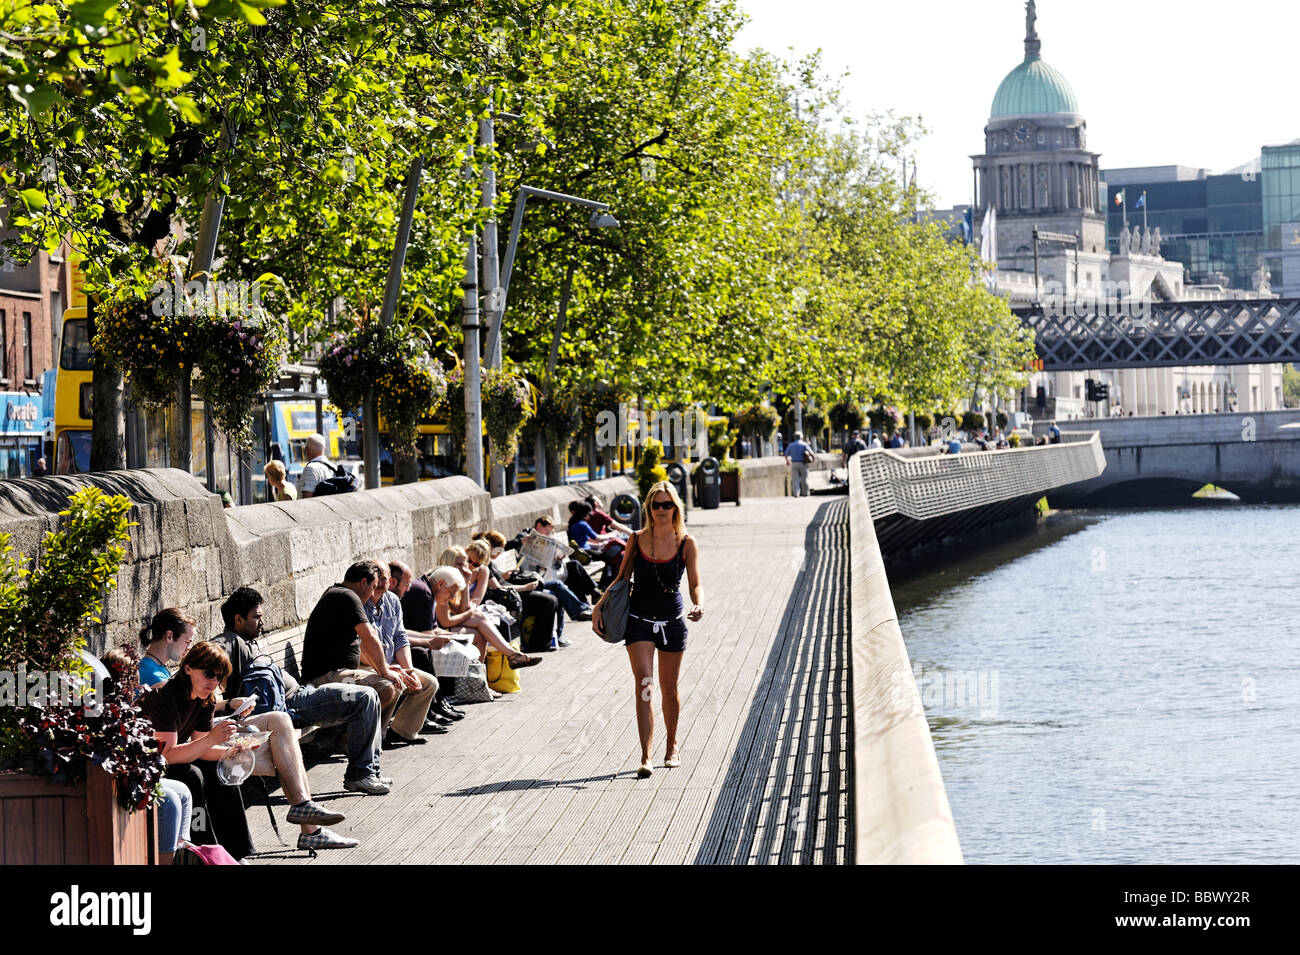 People sitting in the sun on the Liffey boardwalk on Lower Ormond Quay Central Dublin Republic of Ireland - Stock Image